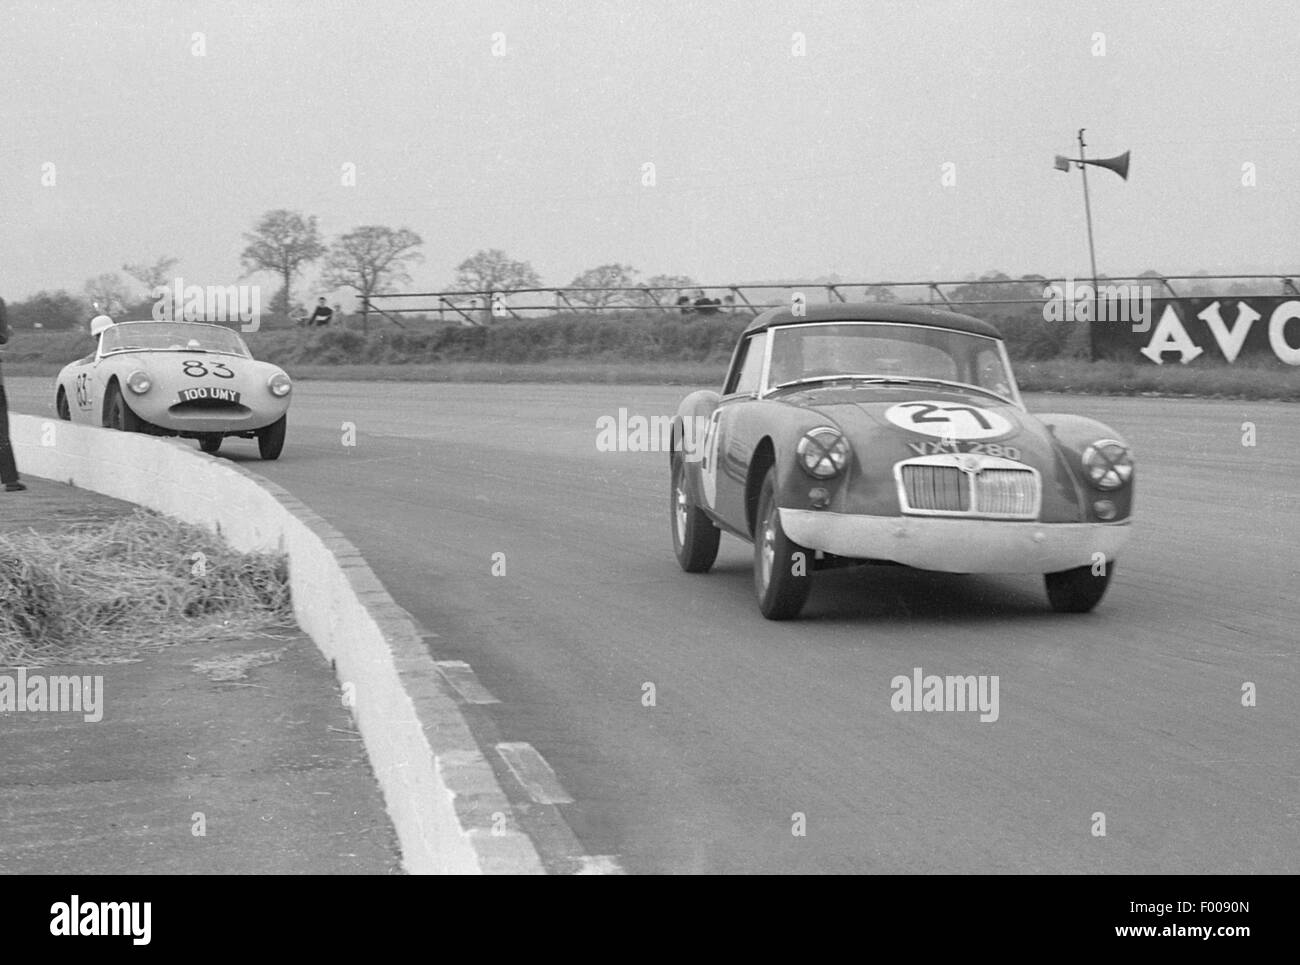 MGA Twin Cam Ecurie Chiltern. D.G. Dixon. Silverstone 9th May 1959 - Stock Image